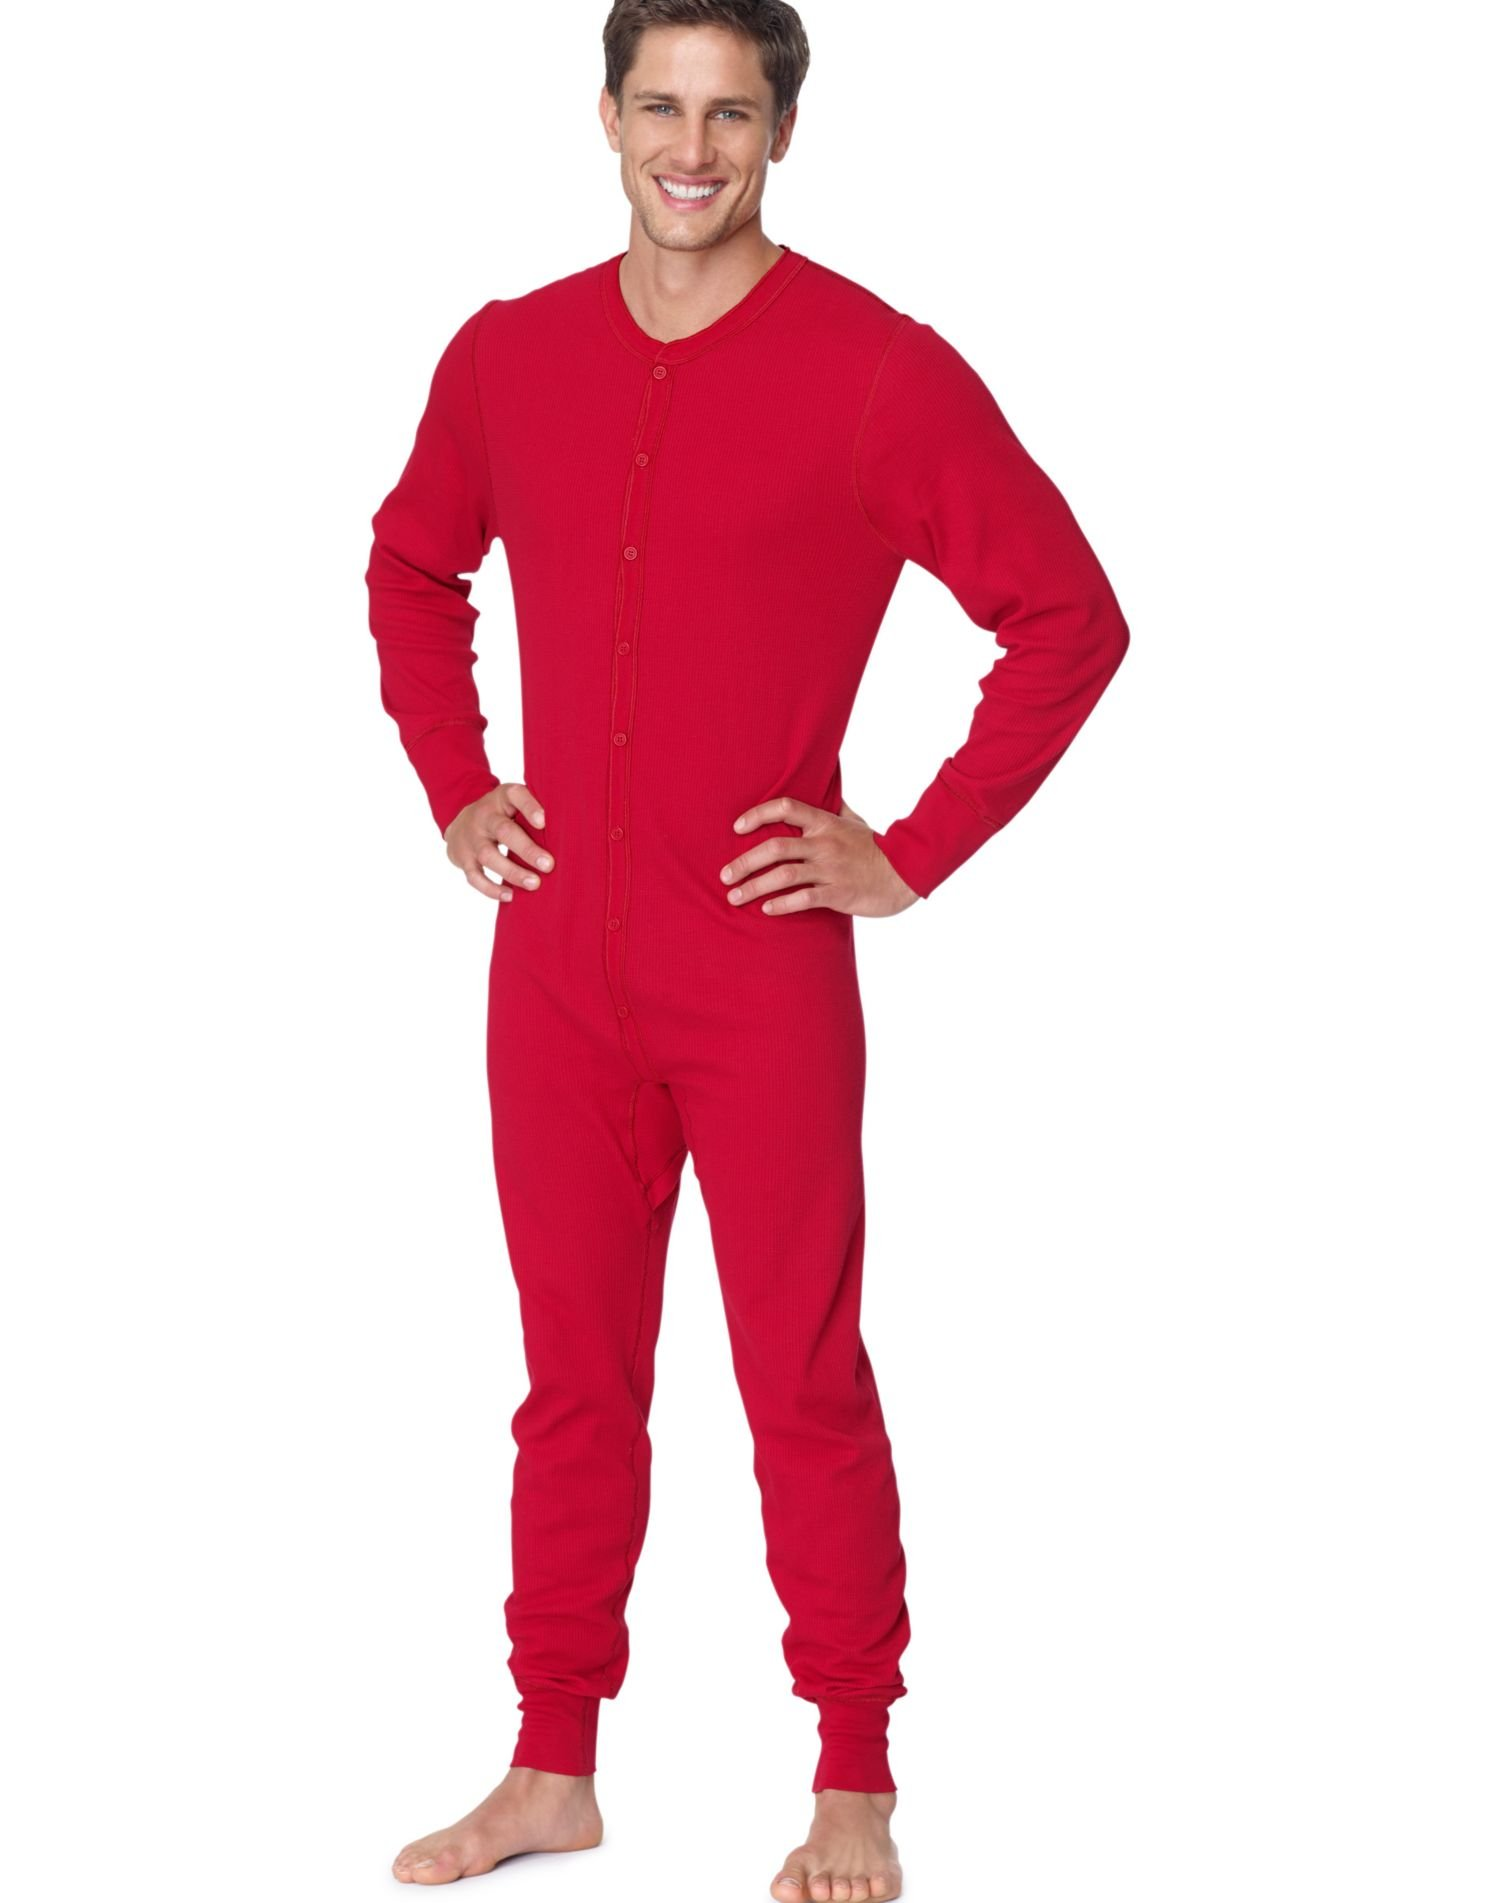 Hanes X-Temp 25443 Mens X-Temp Thermal Union Suit Size 2 Extra Large - Red by Hanes